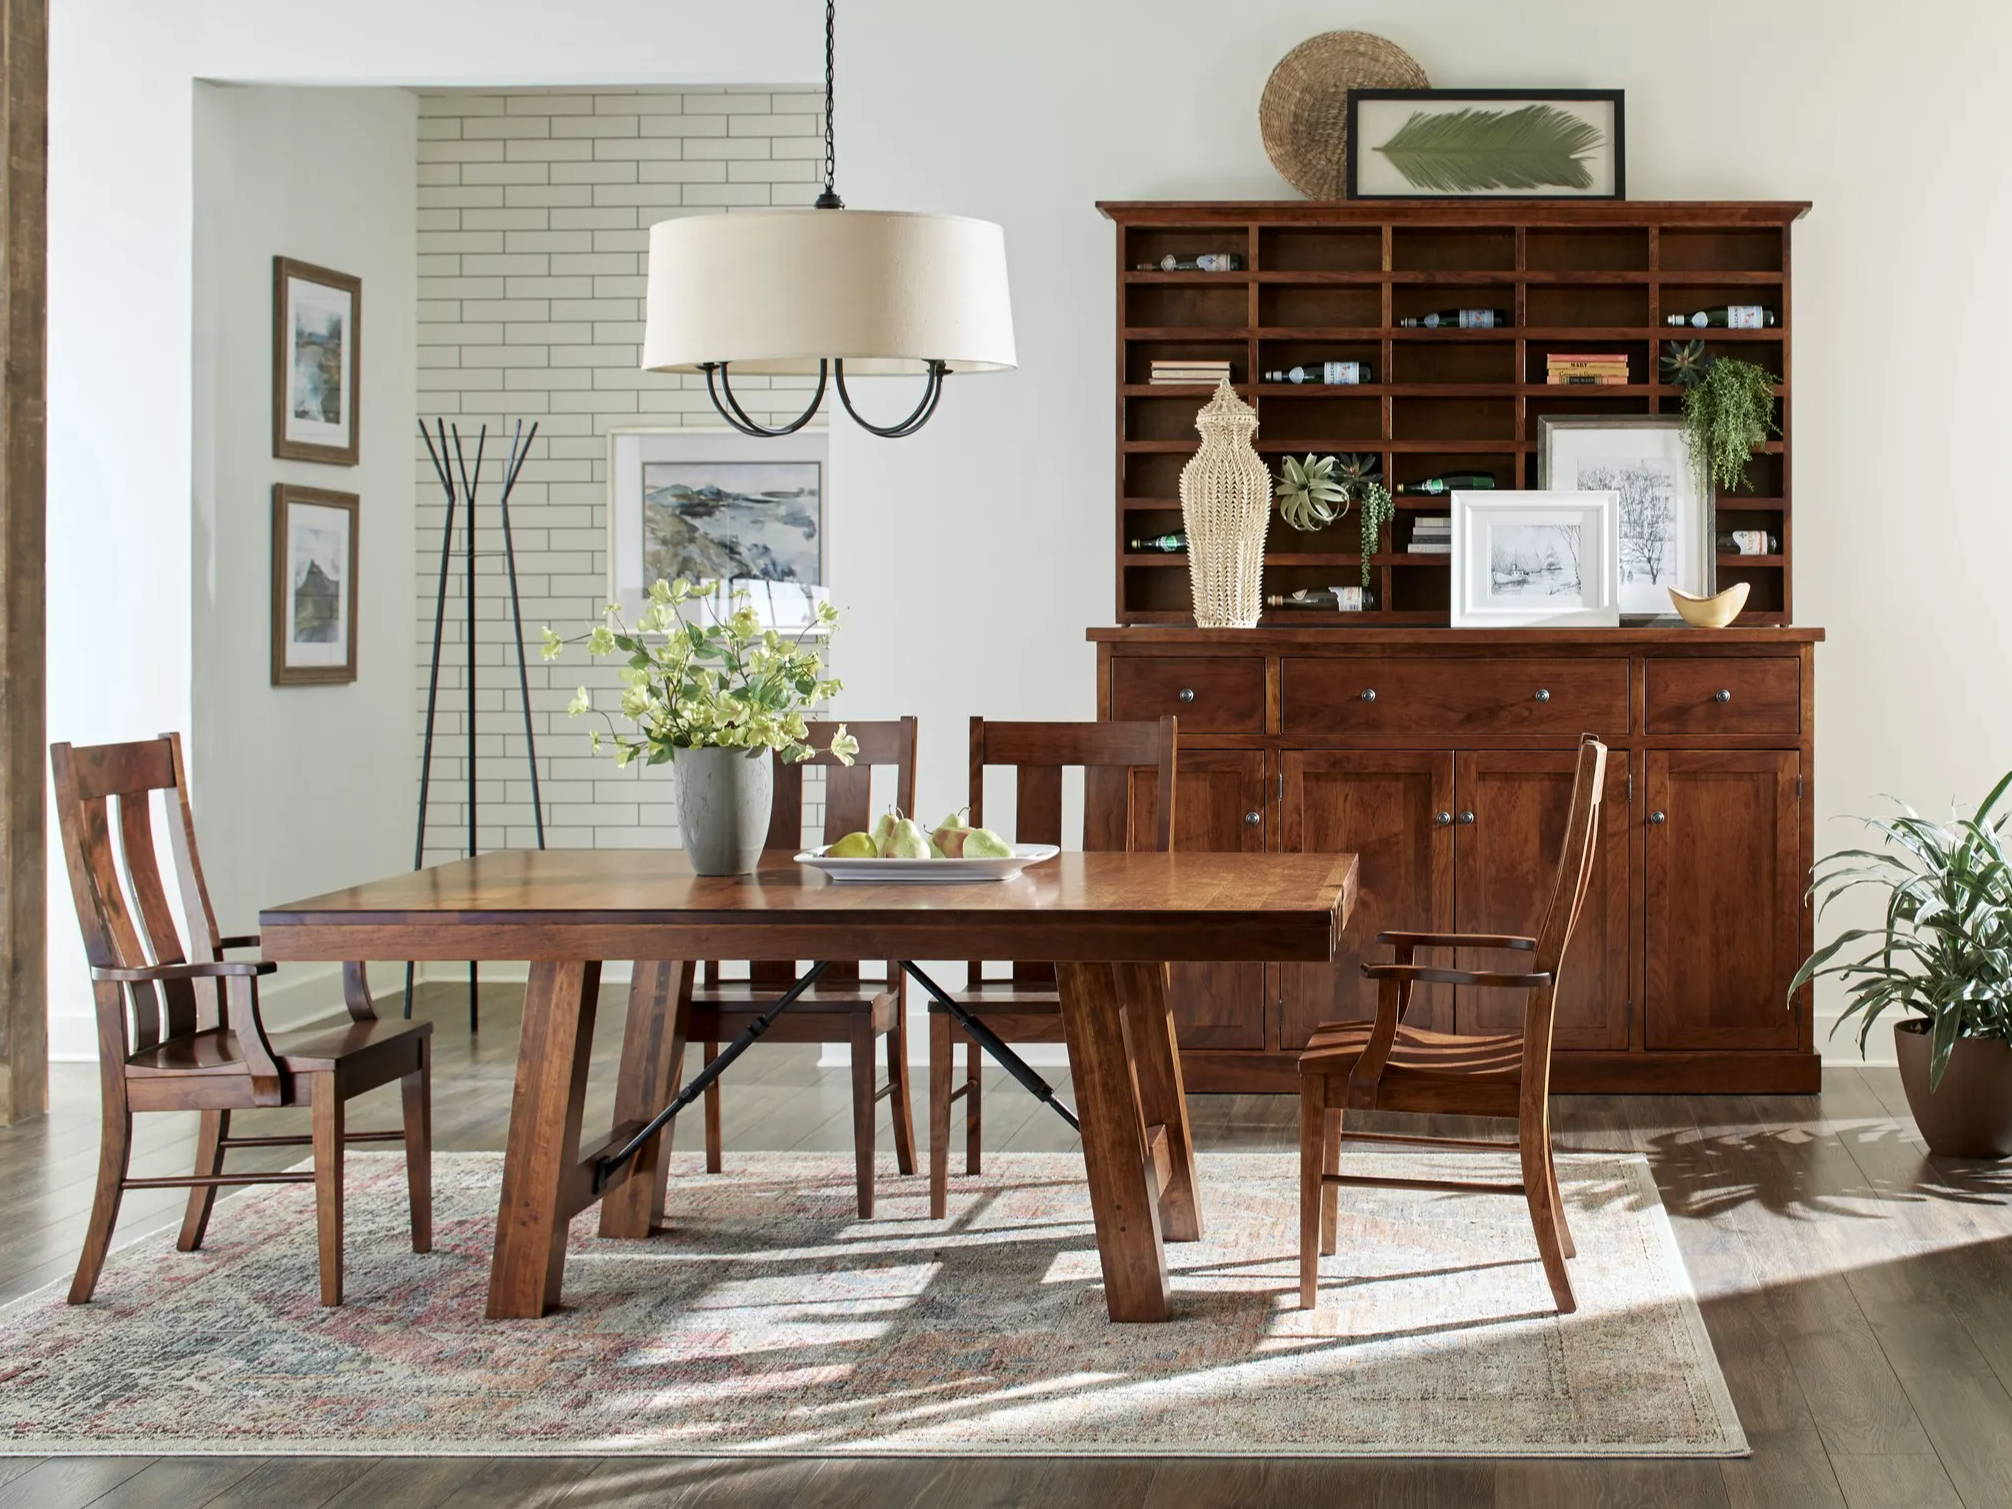 wood dining chairs around a dining table with a large china cabinet in background